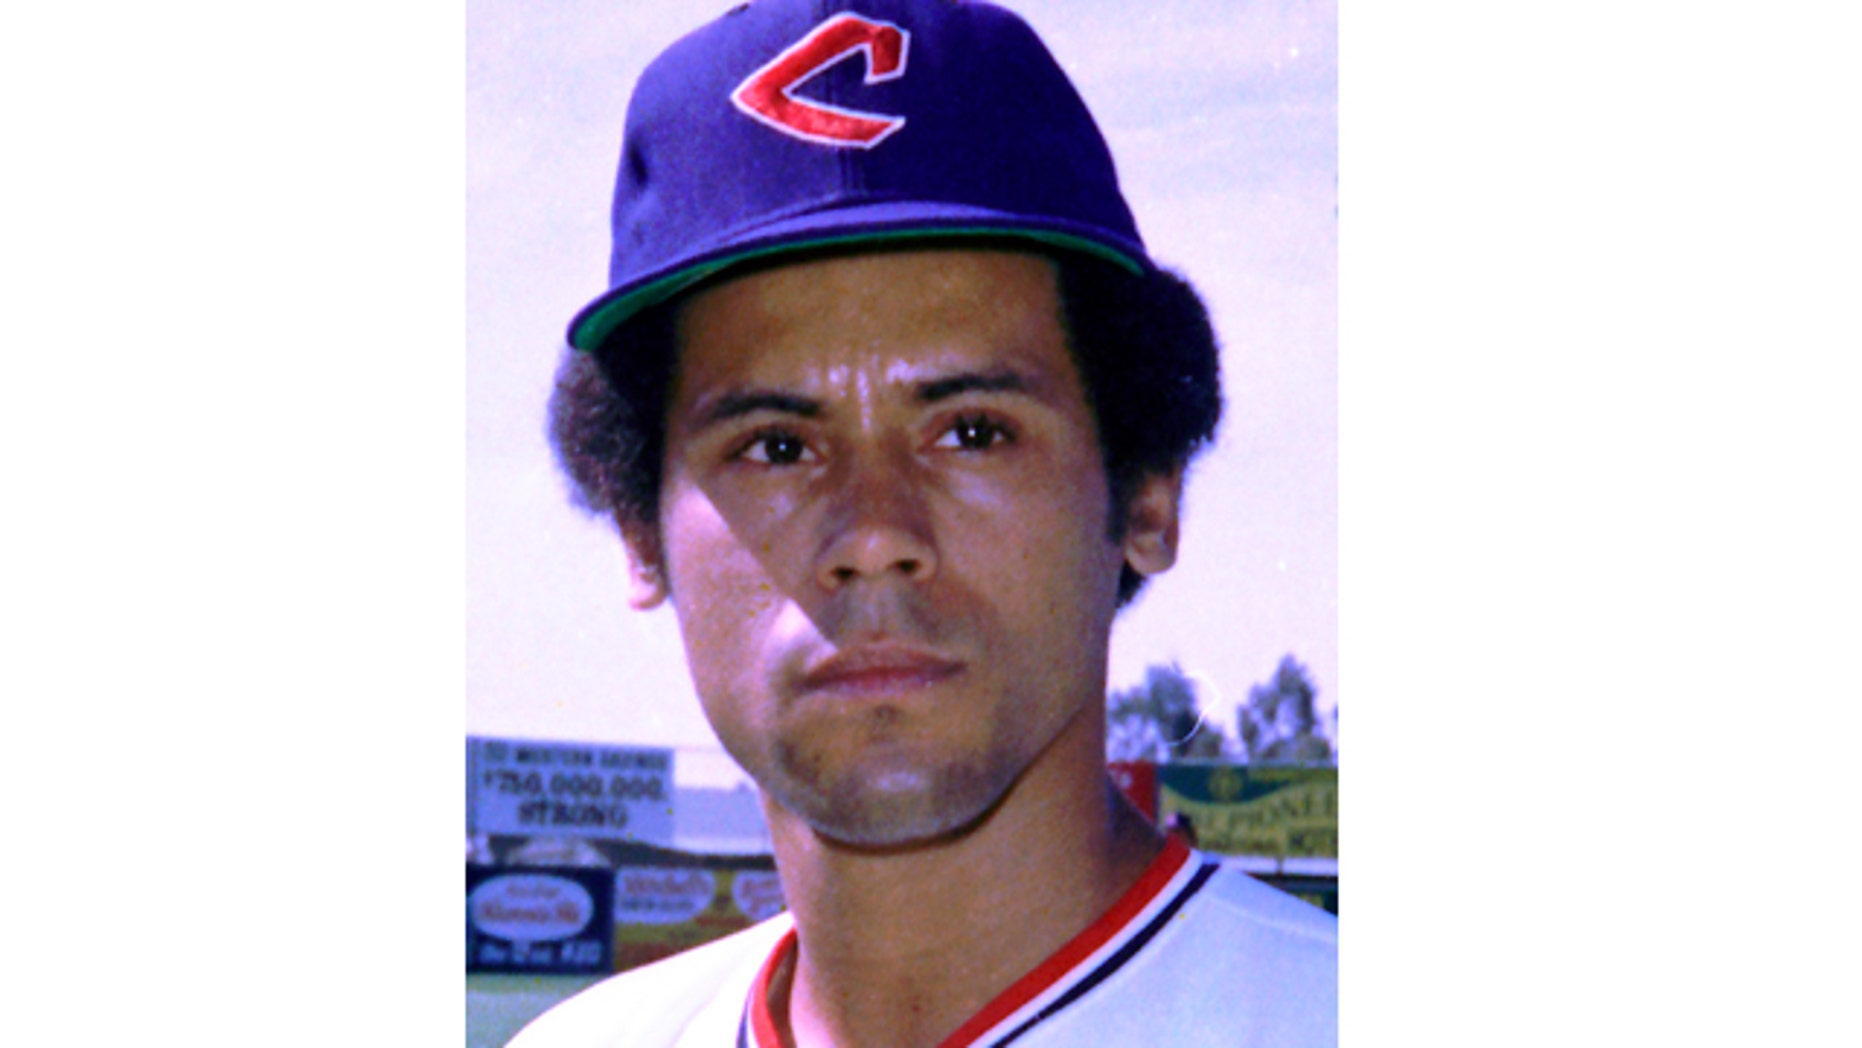 FILE 1974: Rusty Torres, now 63, was arrested on four misdemeanor counts of sexual abuse for allegedly abusing an eight-year-old while serving as a baseball coach in the town of Oyster Bay, N.Y.